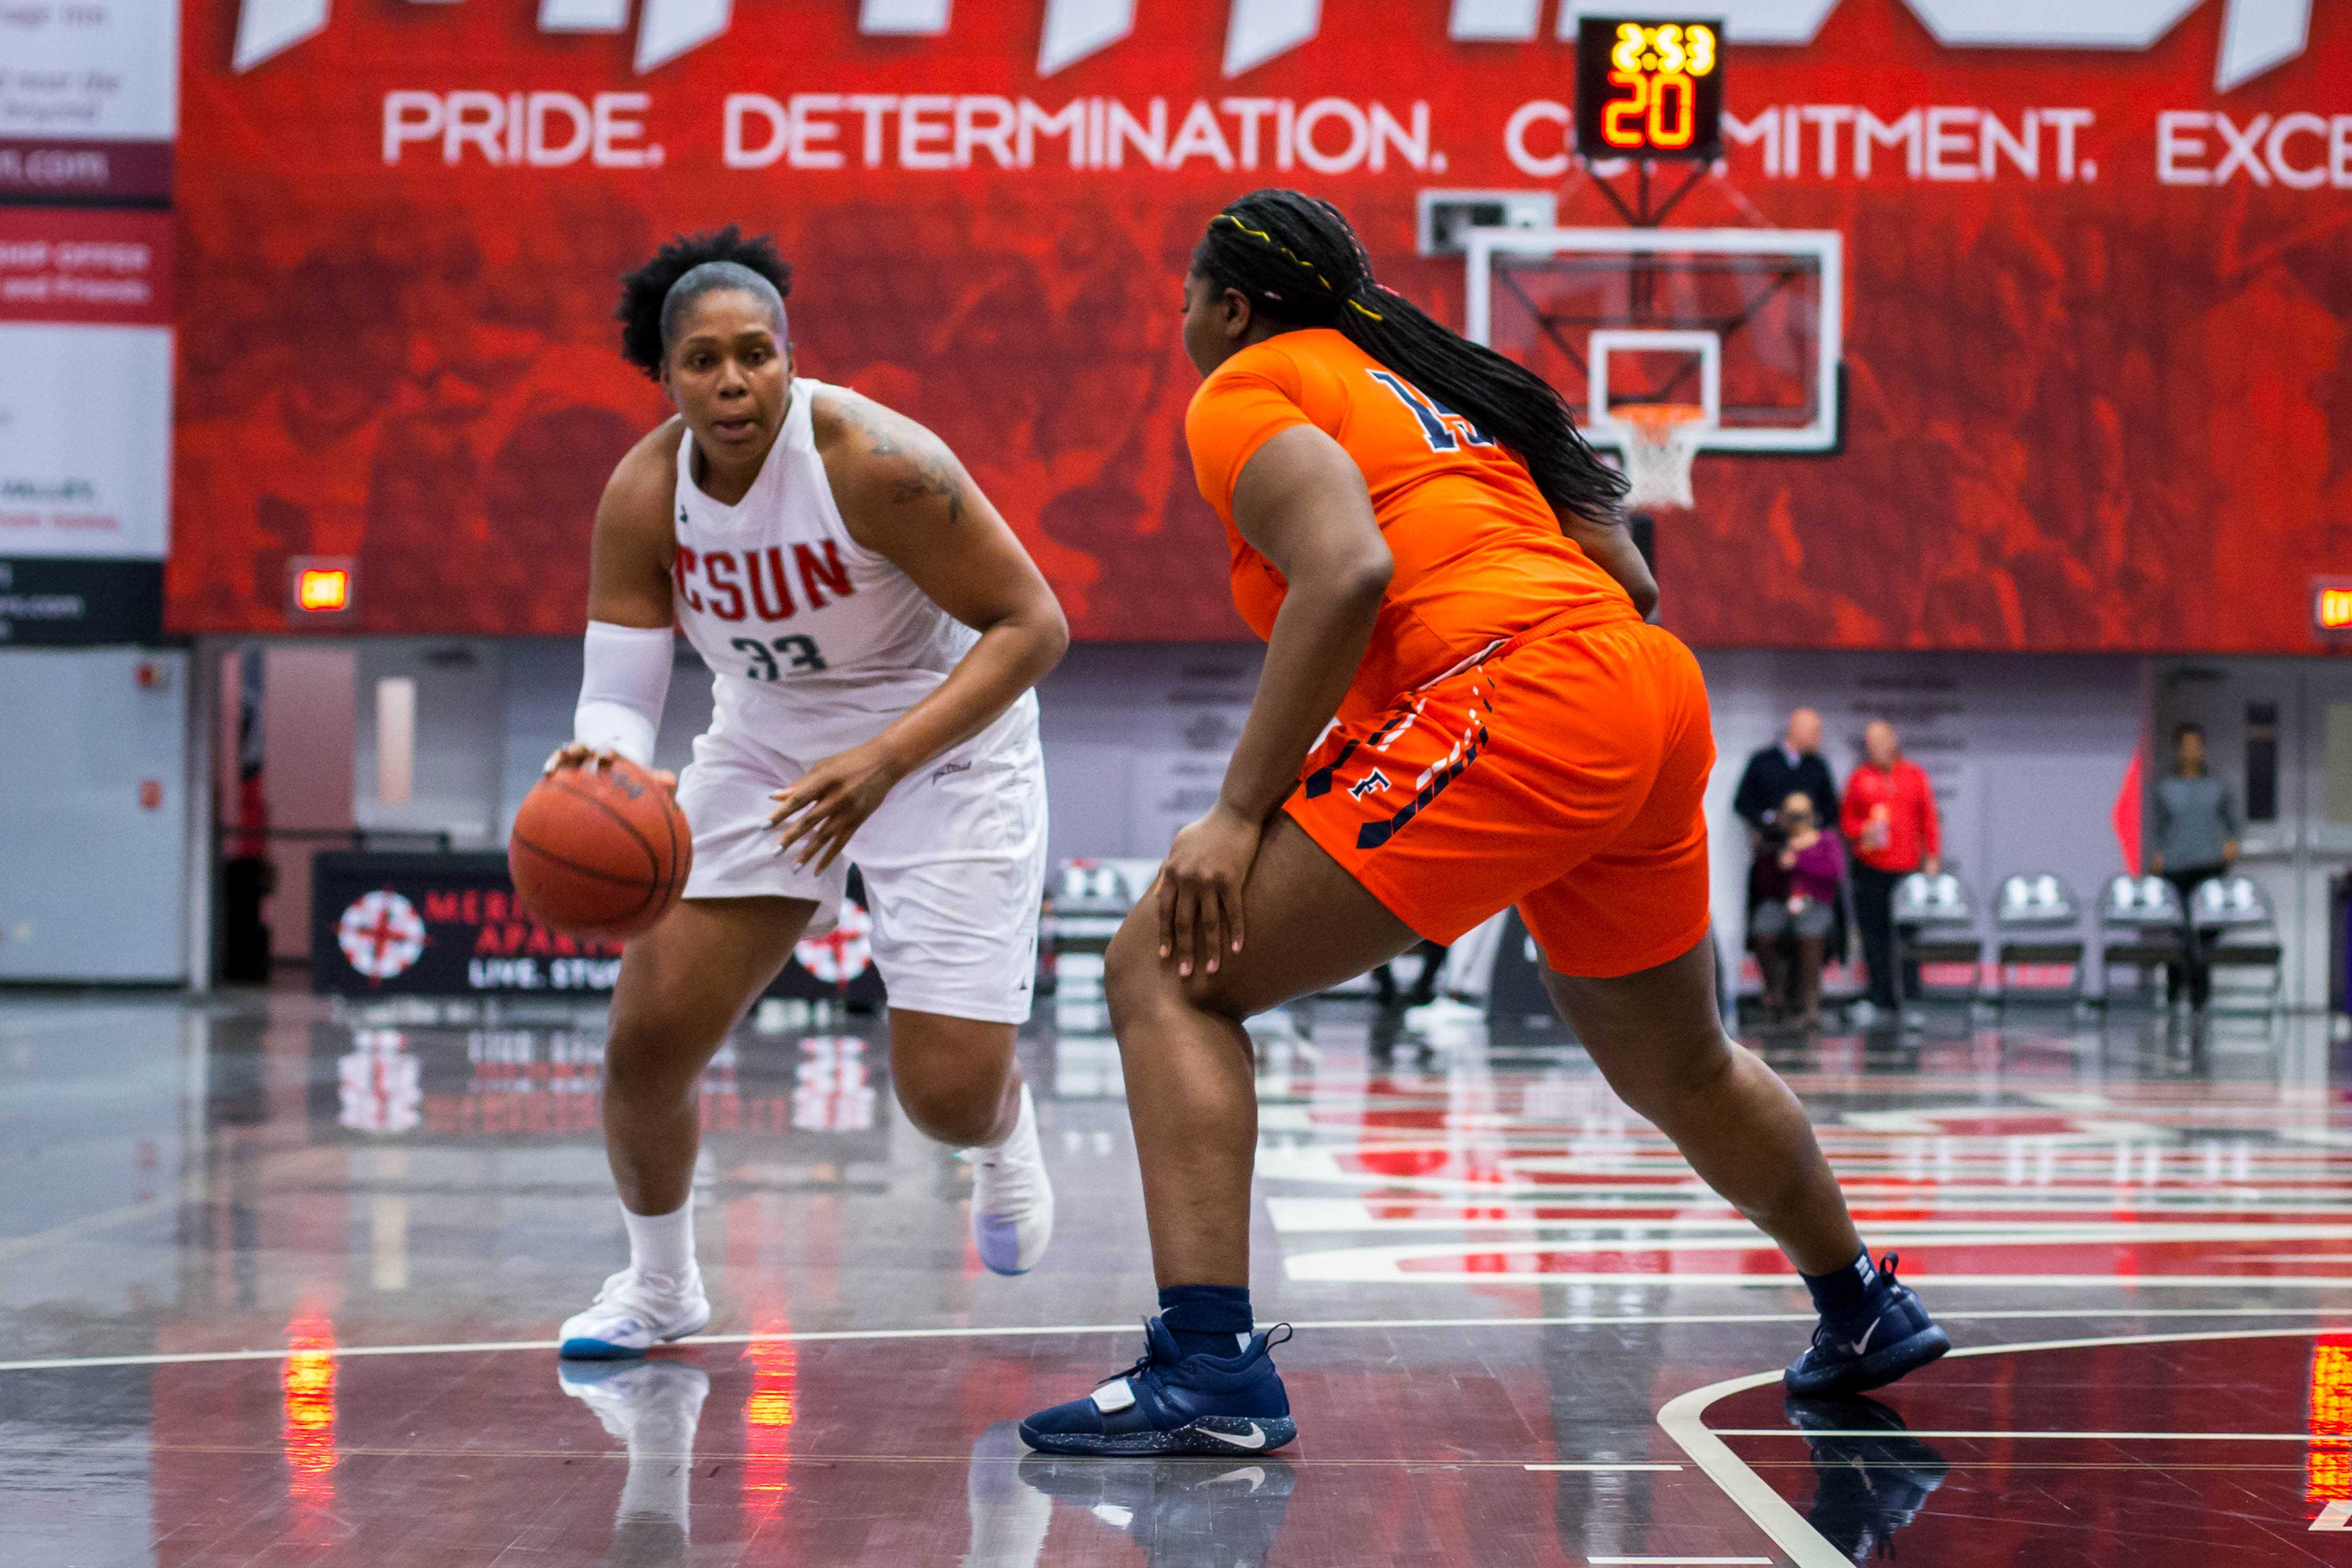 Senior Channon Fluker attempts to dribble past her opponent in the win over Fullerton on Thursday. This past week, Fluker was nominated for the Lisa Leslie Award, broke the 2,000-point barrier and broke the record for most BWC Player of the Week awards. Photo credit: John Hernandez